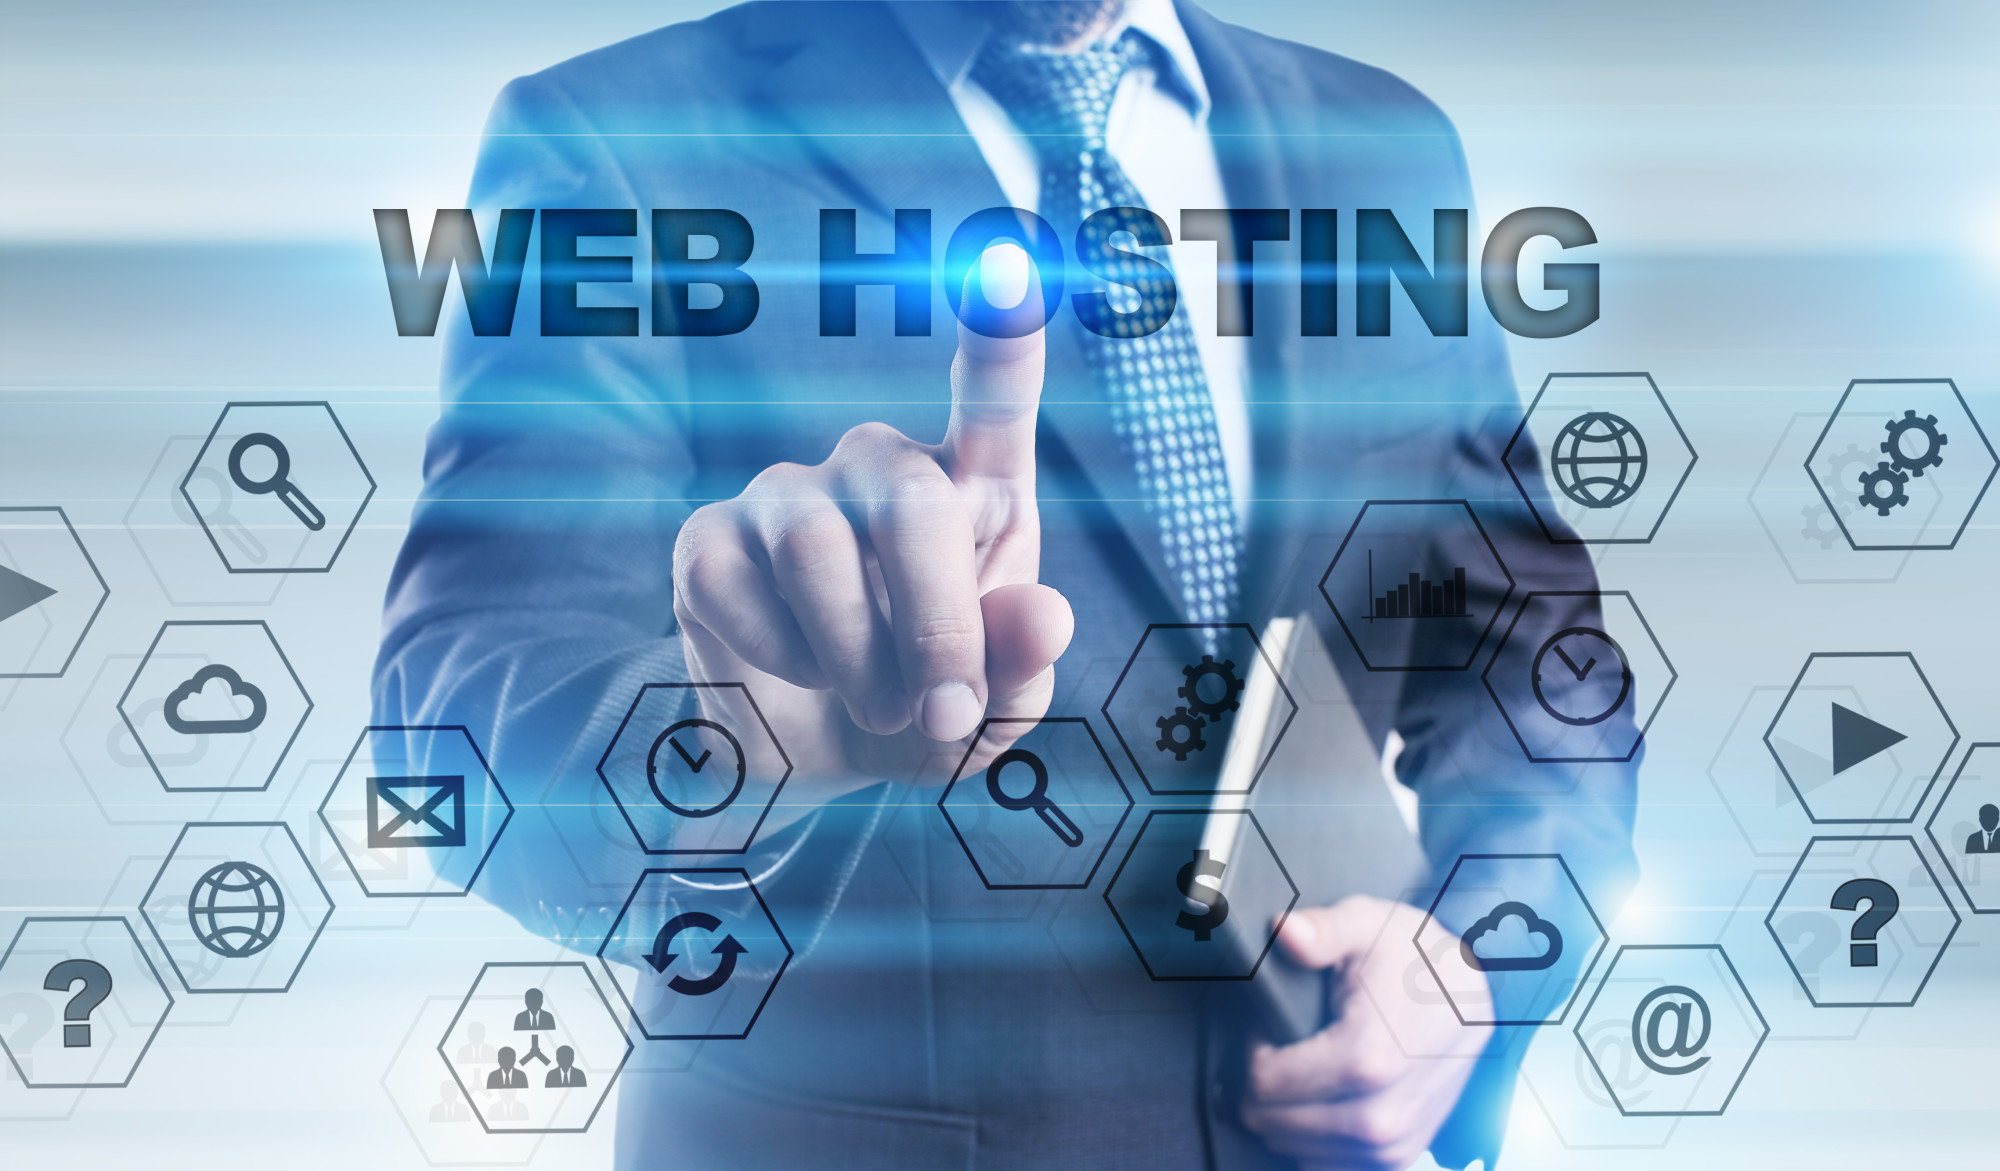 web hosting text and icons